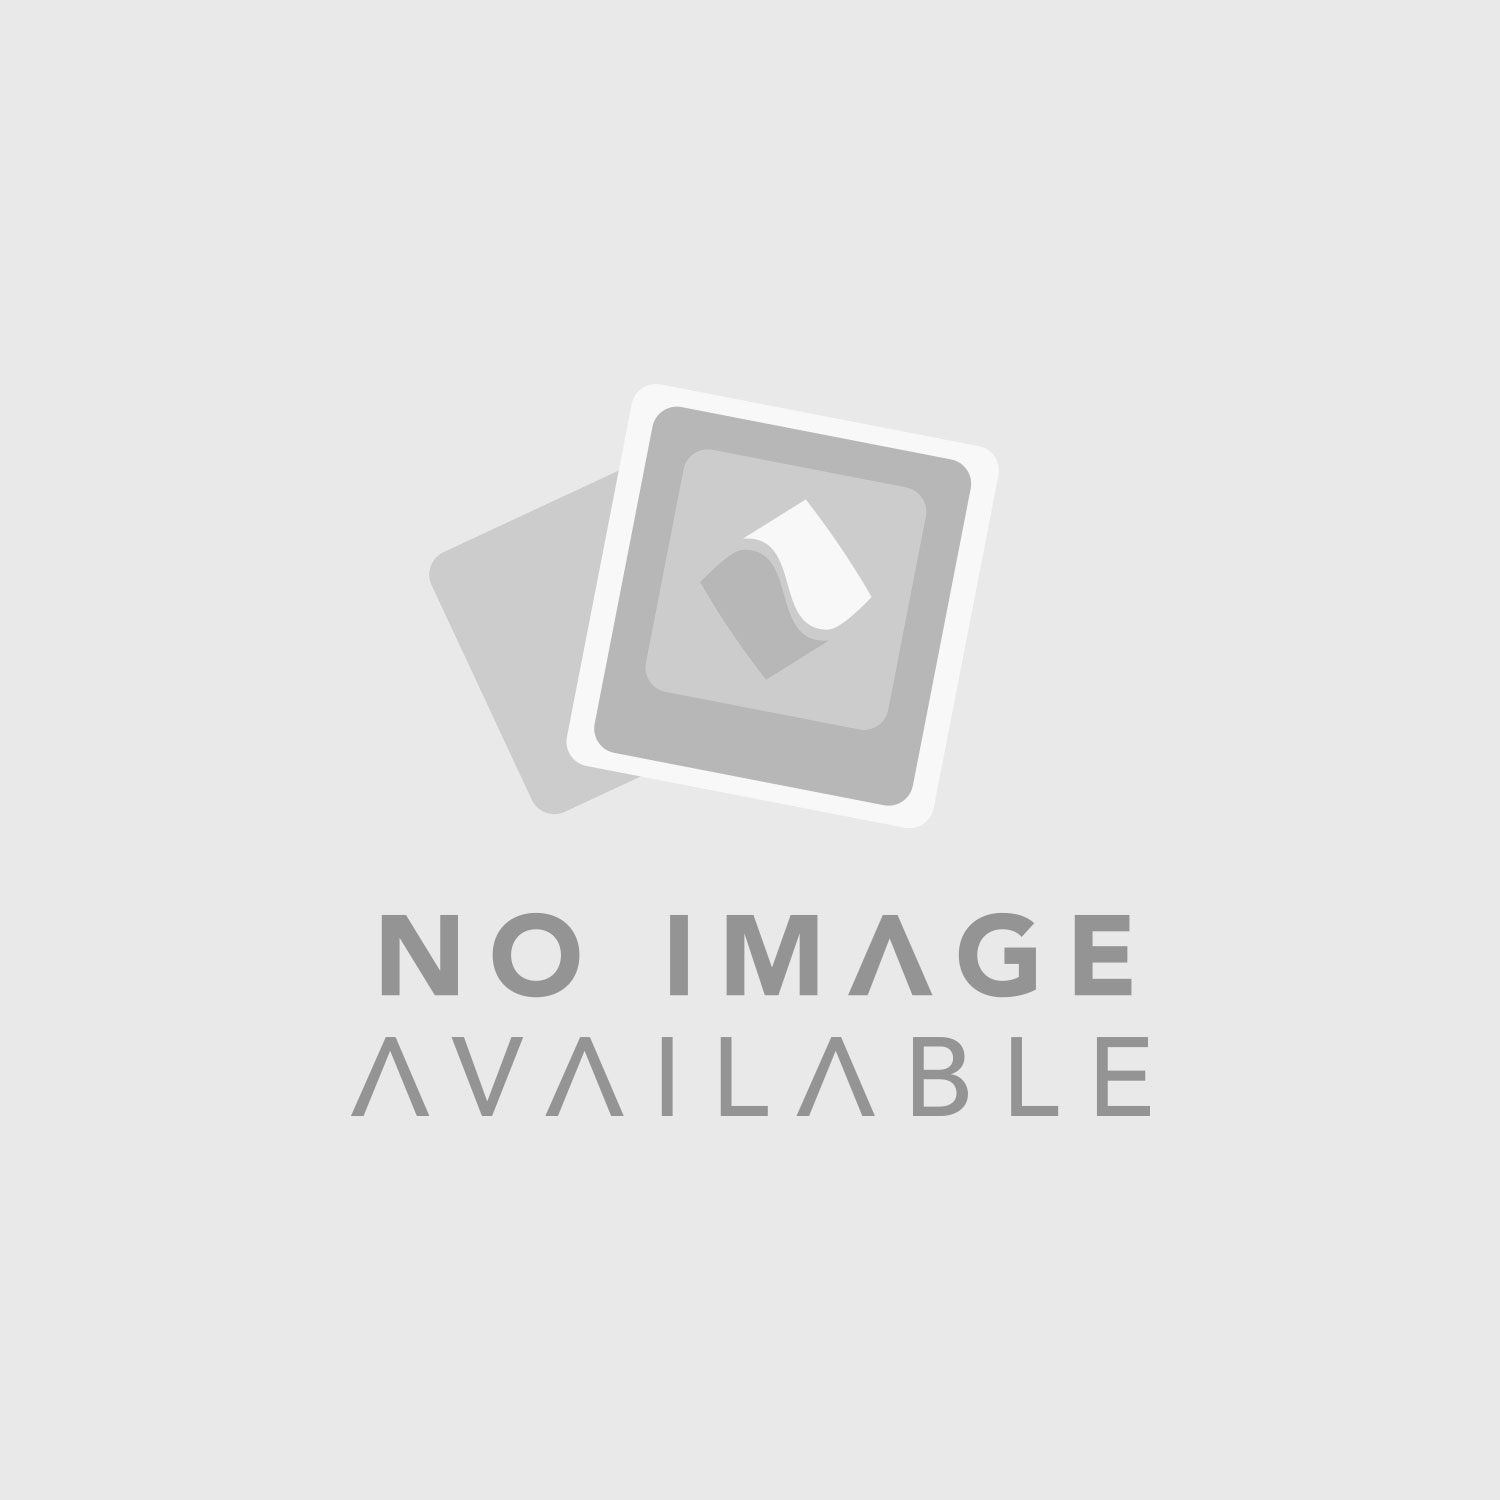 Pioneer DJ HDJ-S7 Professional On-Ear DJ Headphones (White)